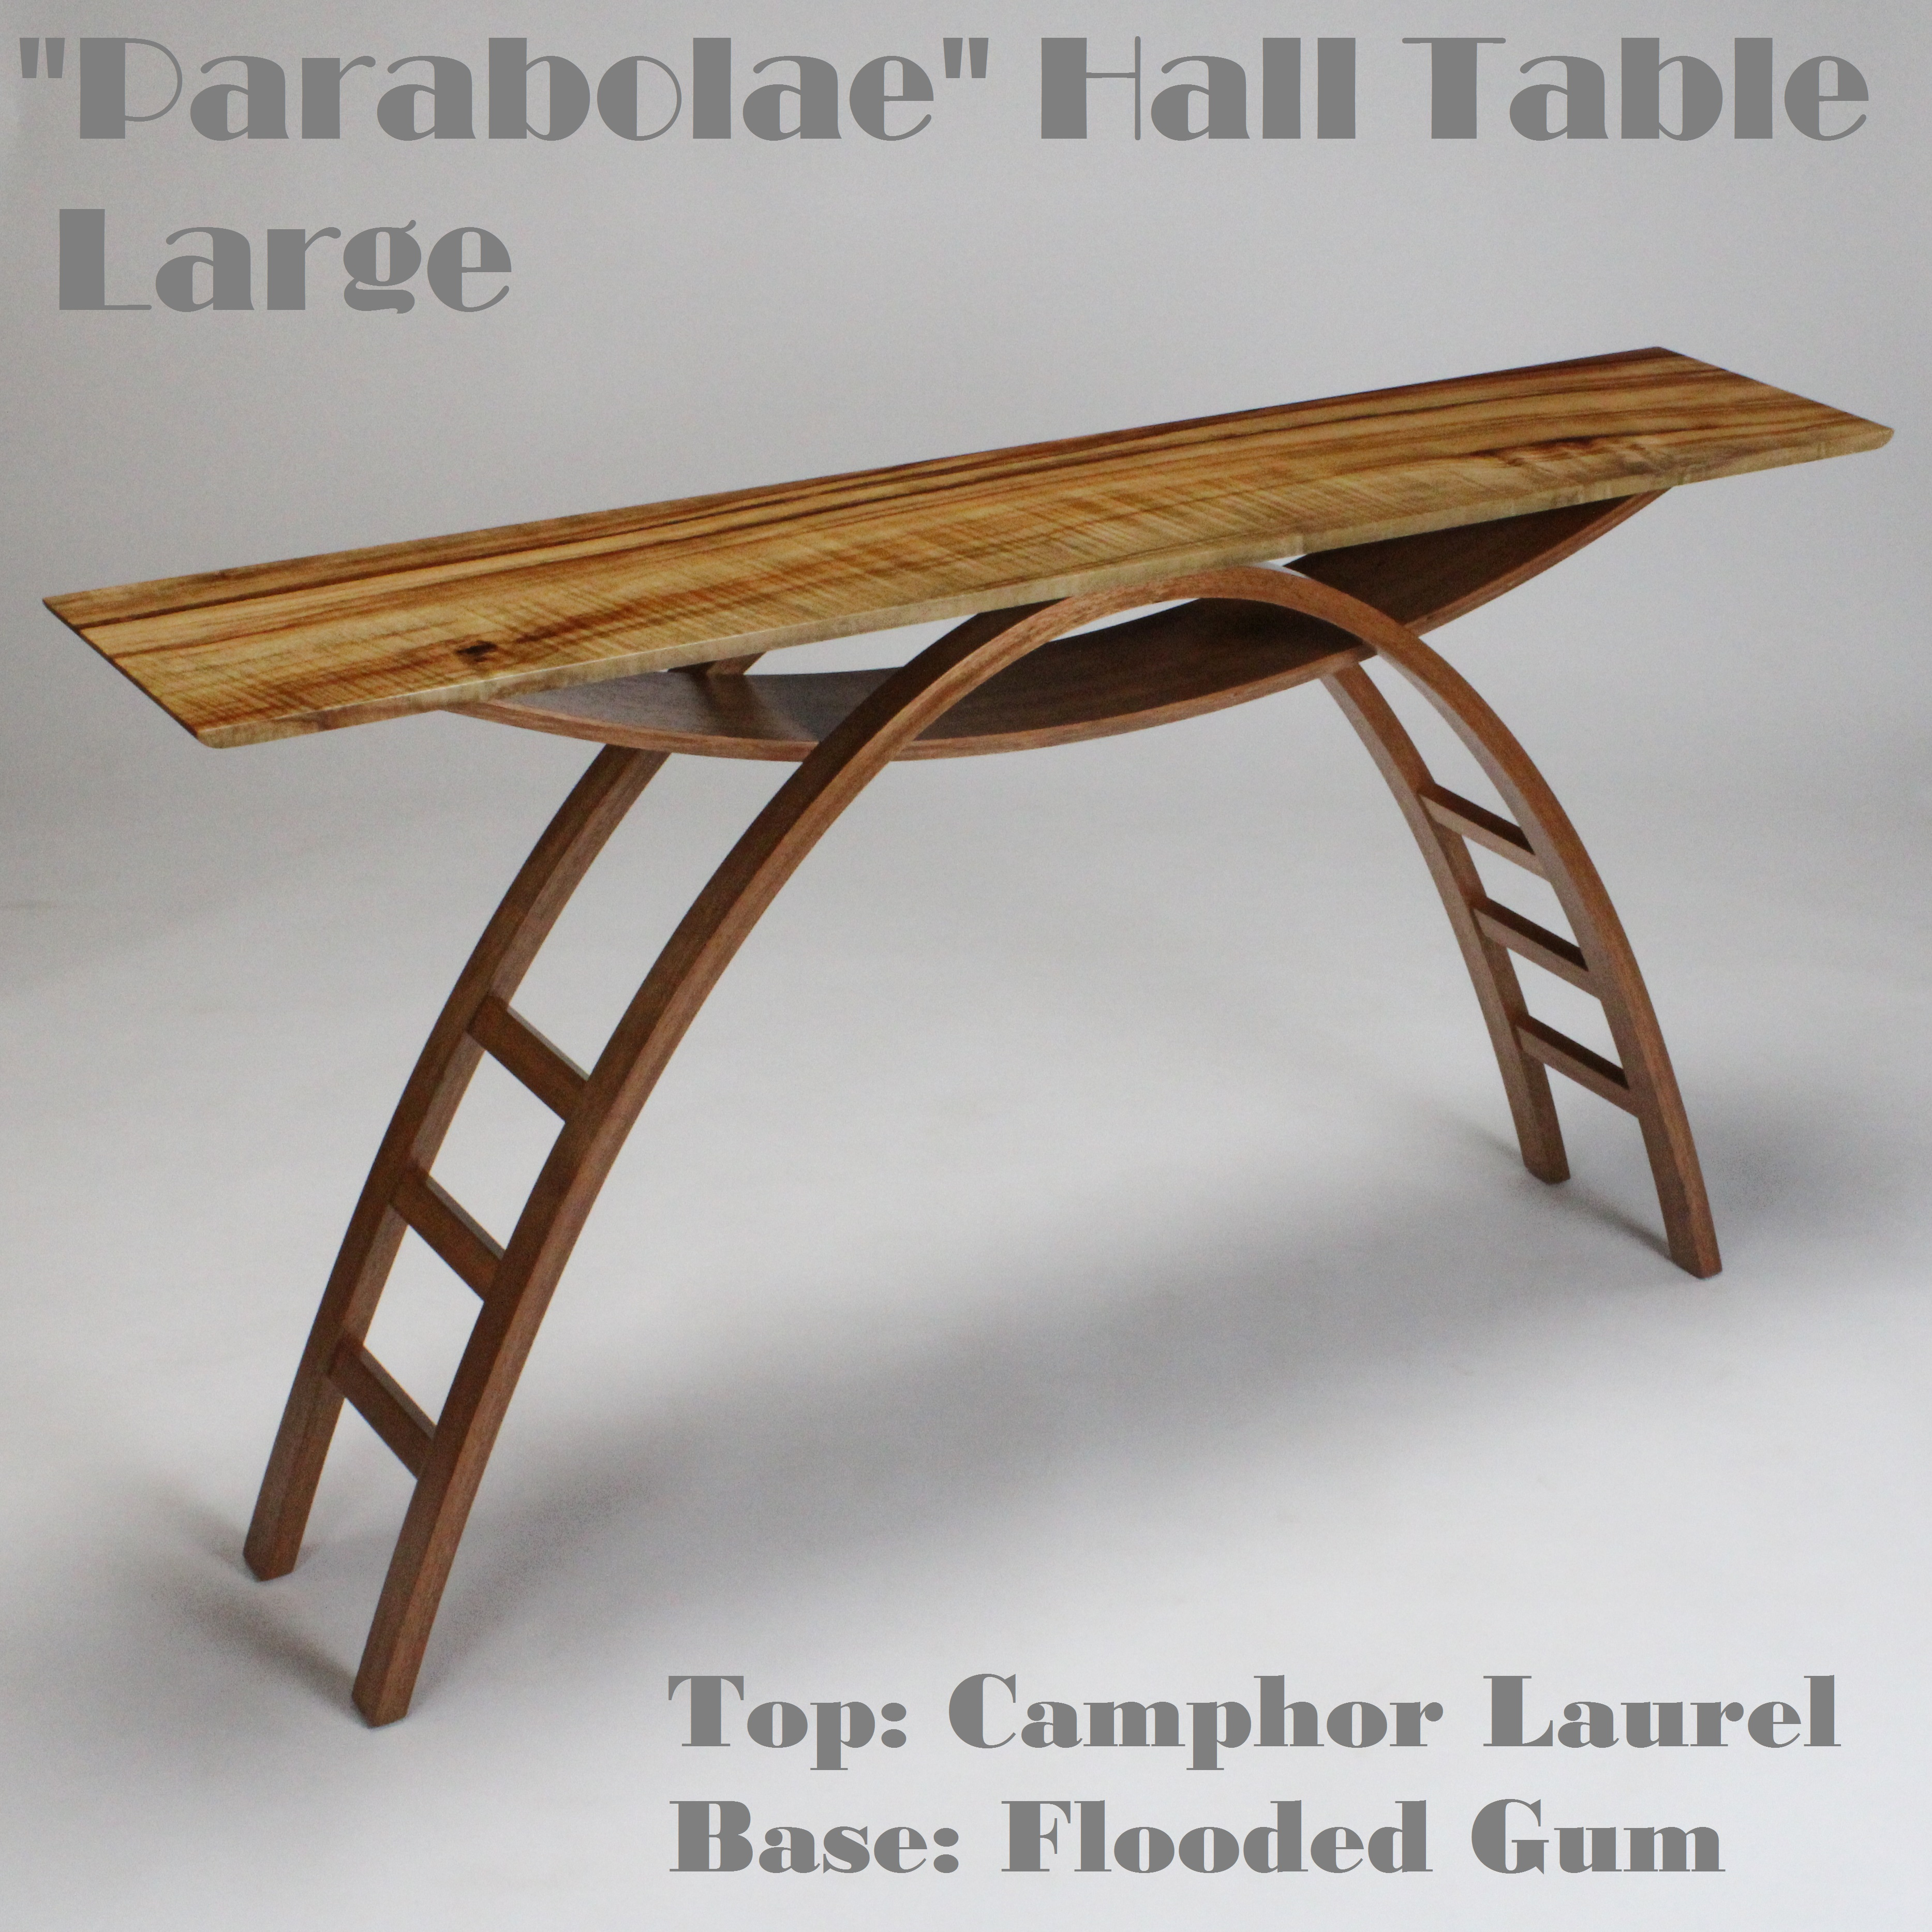 Parabolae 106 Hall Table Website 2